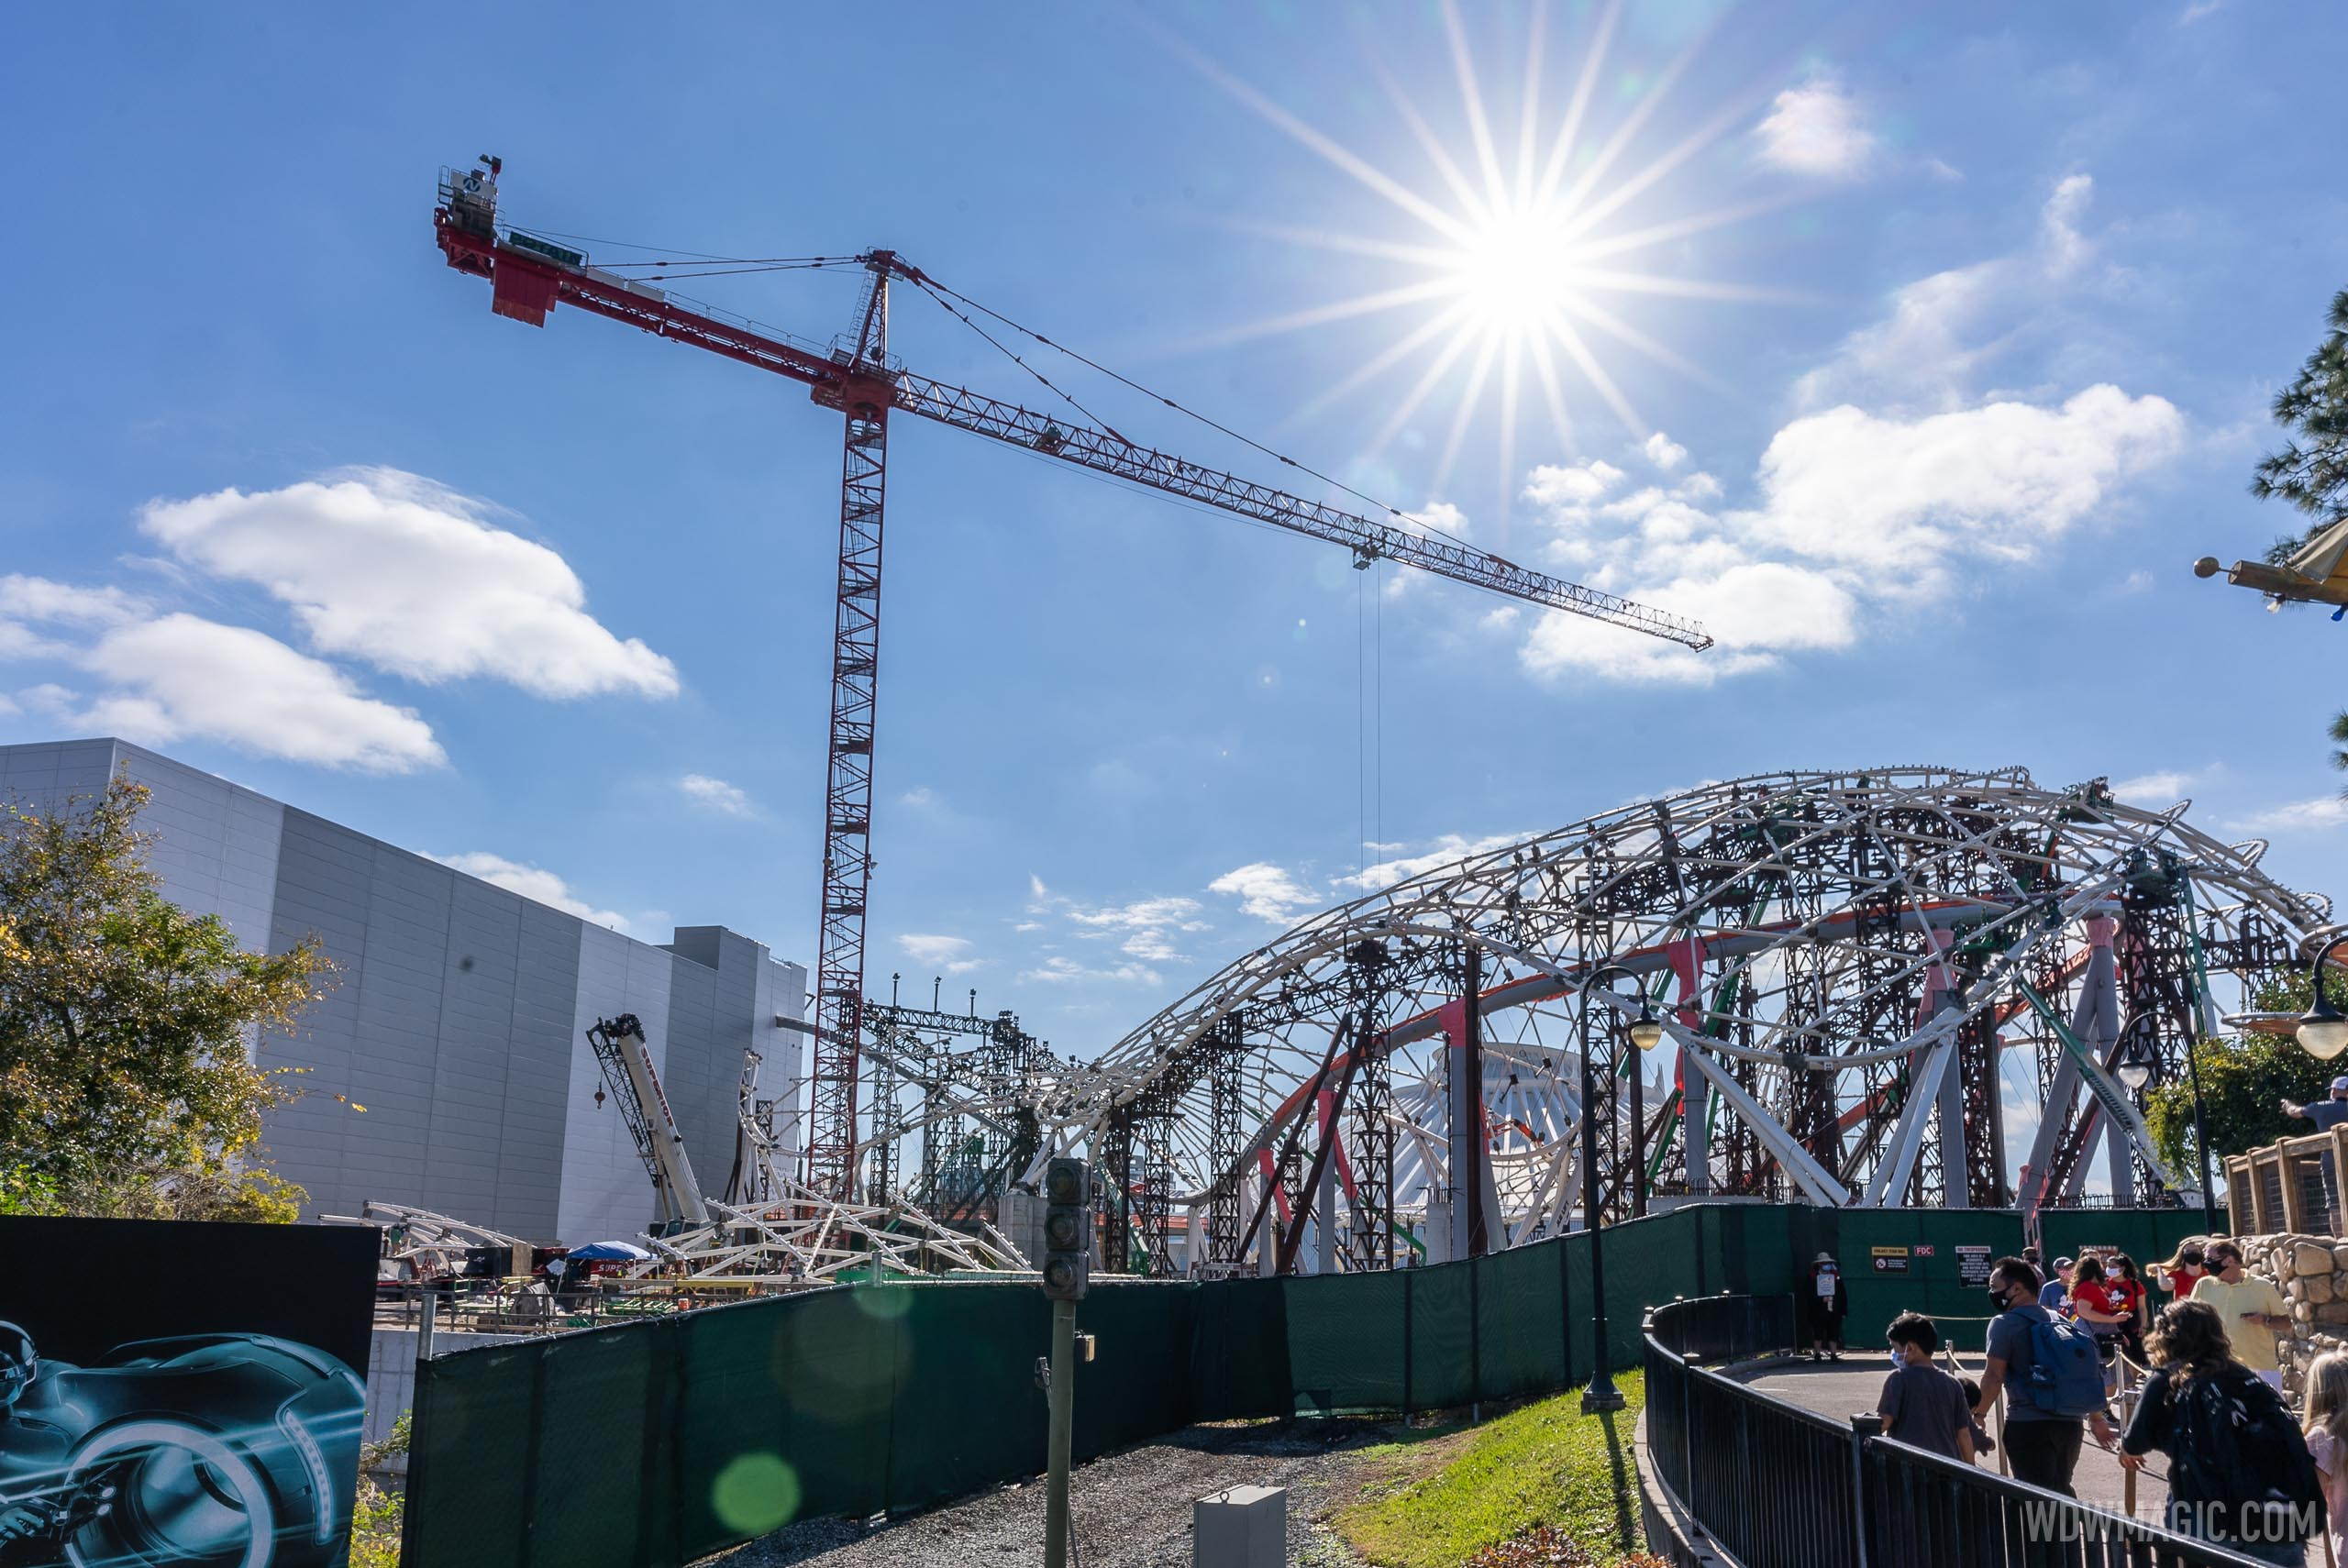 TRON's opening has been heavily delayed by COVID-19 shutdowns and an upcoming construction pause